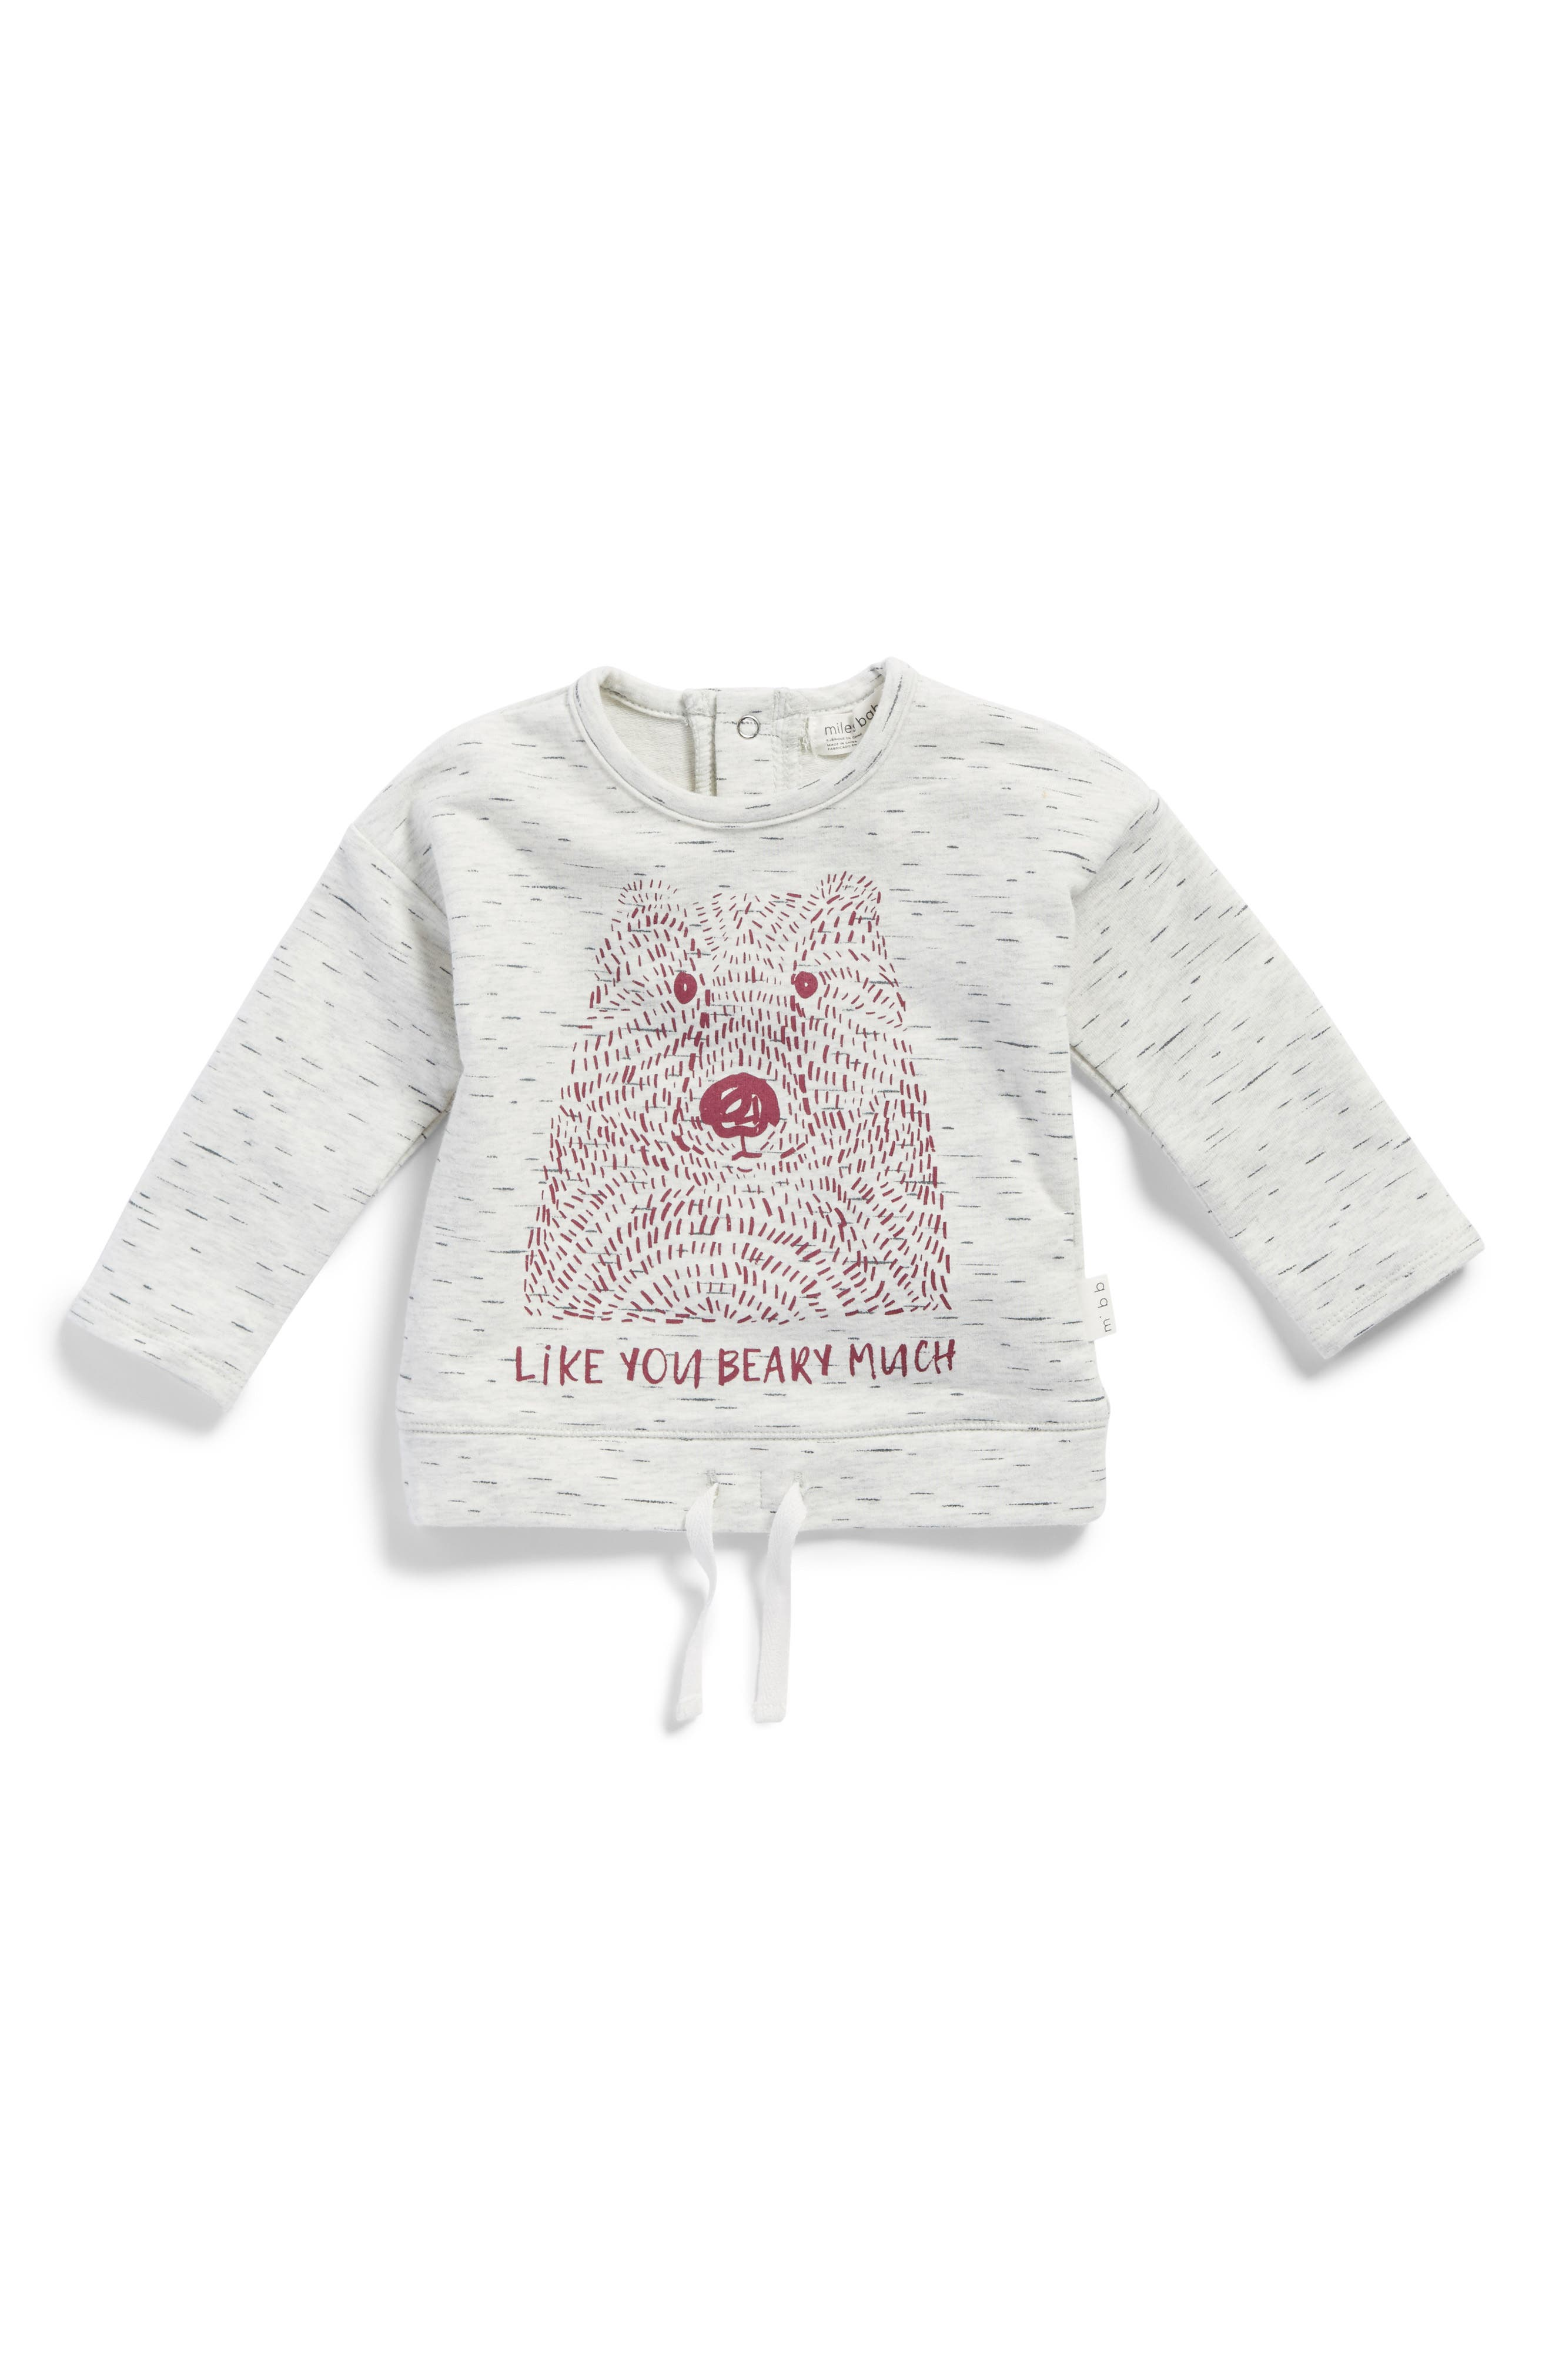 Alternate Image 1 Selected - Miles Baby Like You Beary Much Graphic Tee (Baby Girls)